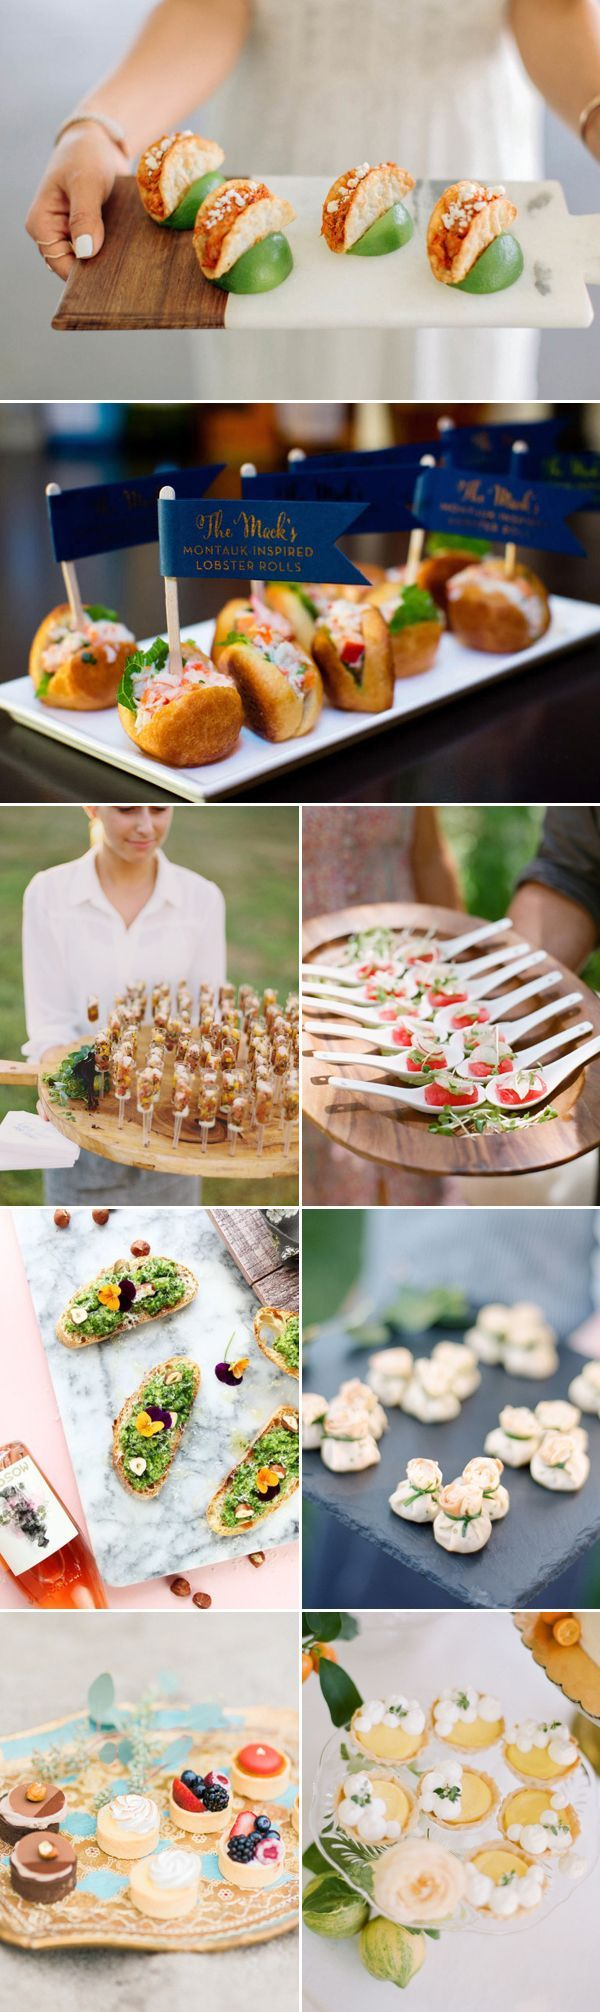 Attention Foodies! Here Comes 2016 Wedding Food Trends!